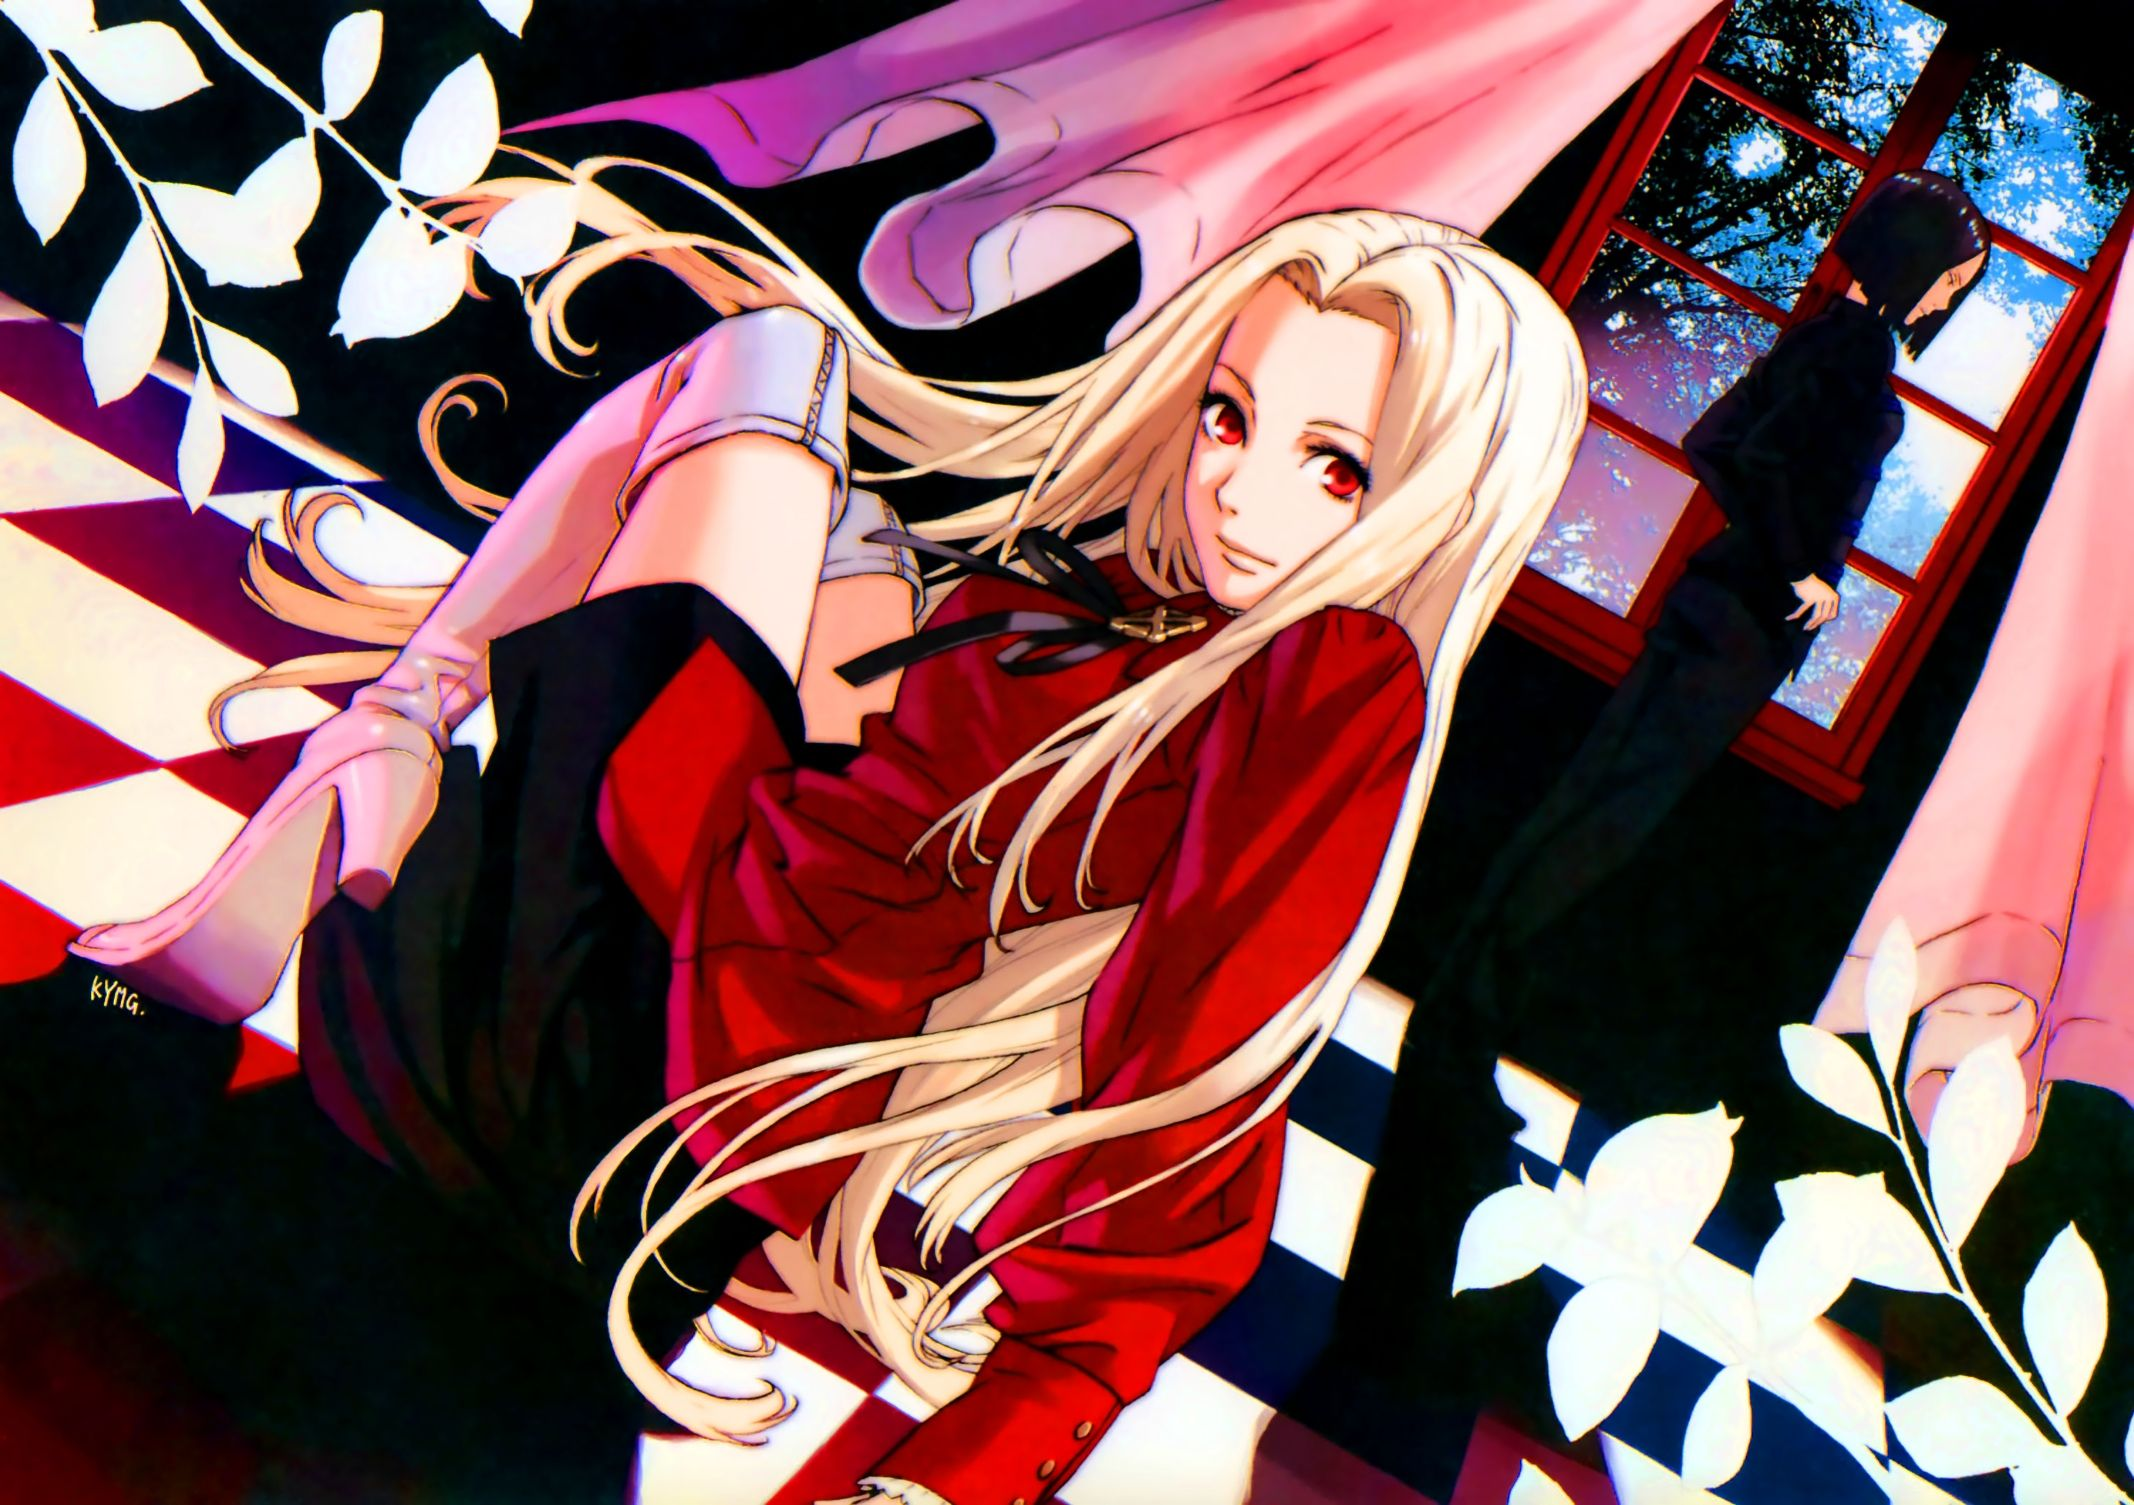 Minitokyo_Fate-Stay_Night_Scans_444024.jpg